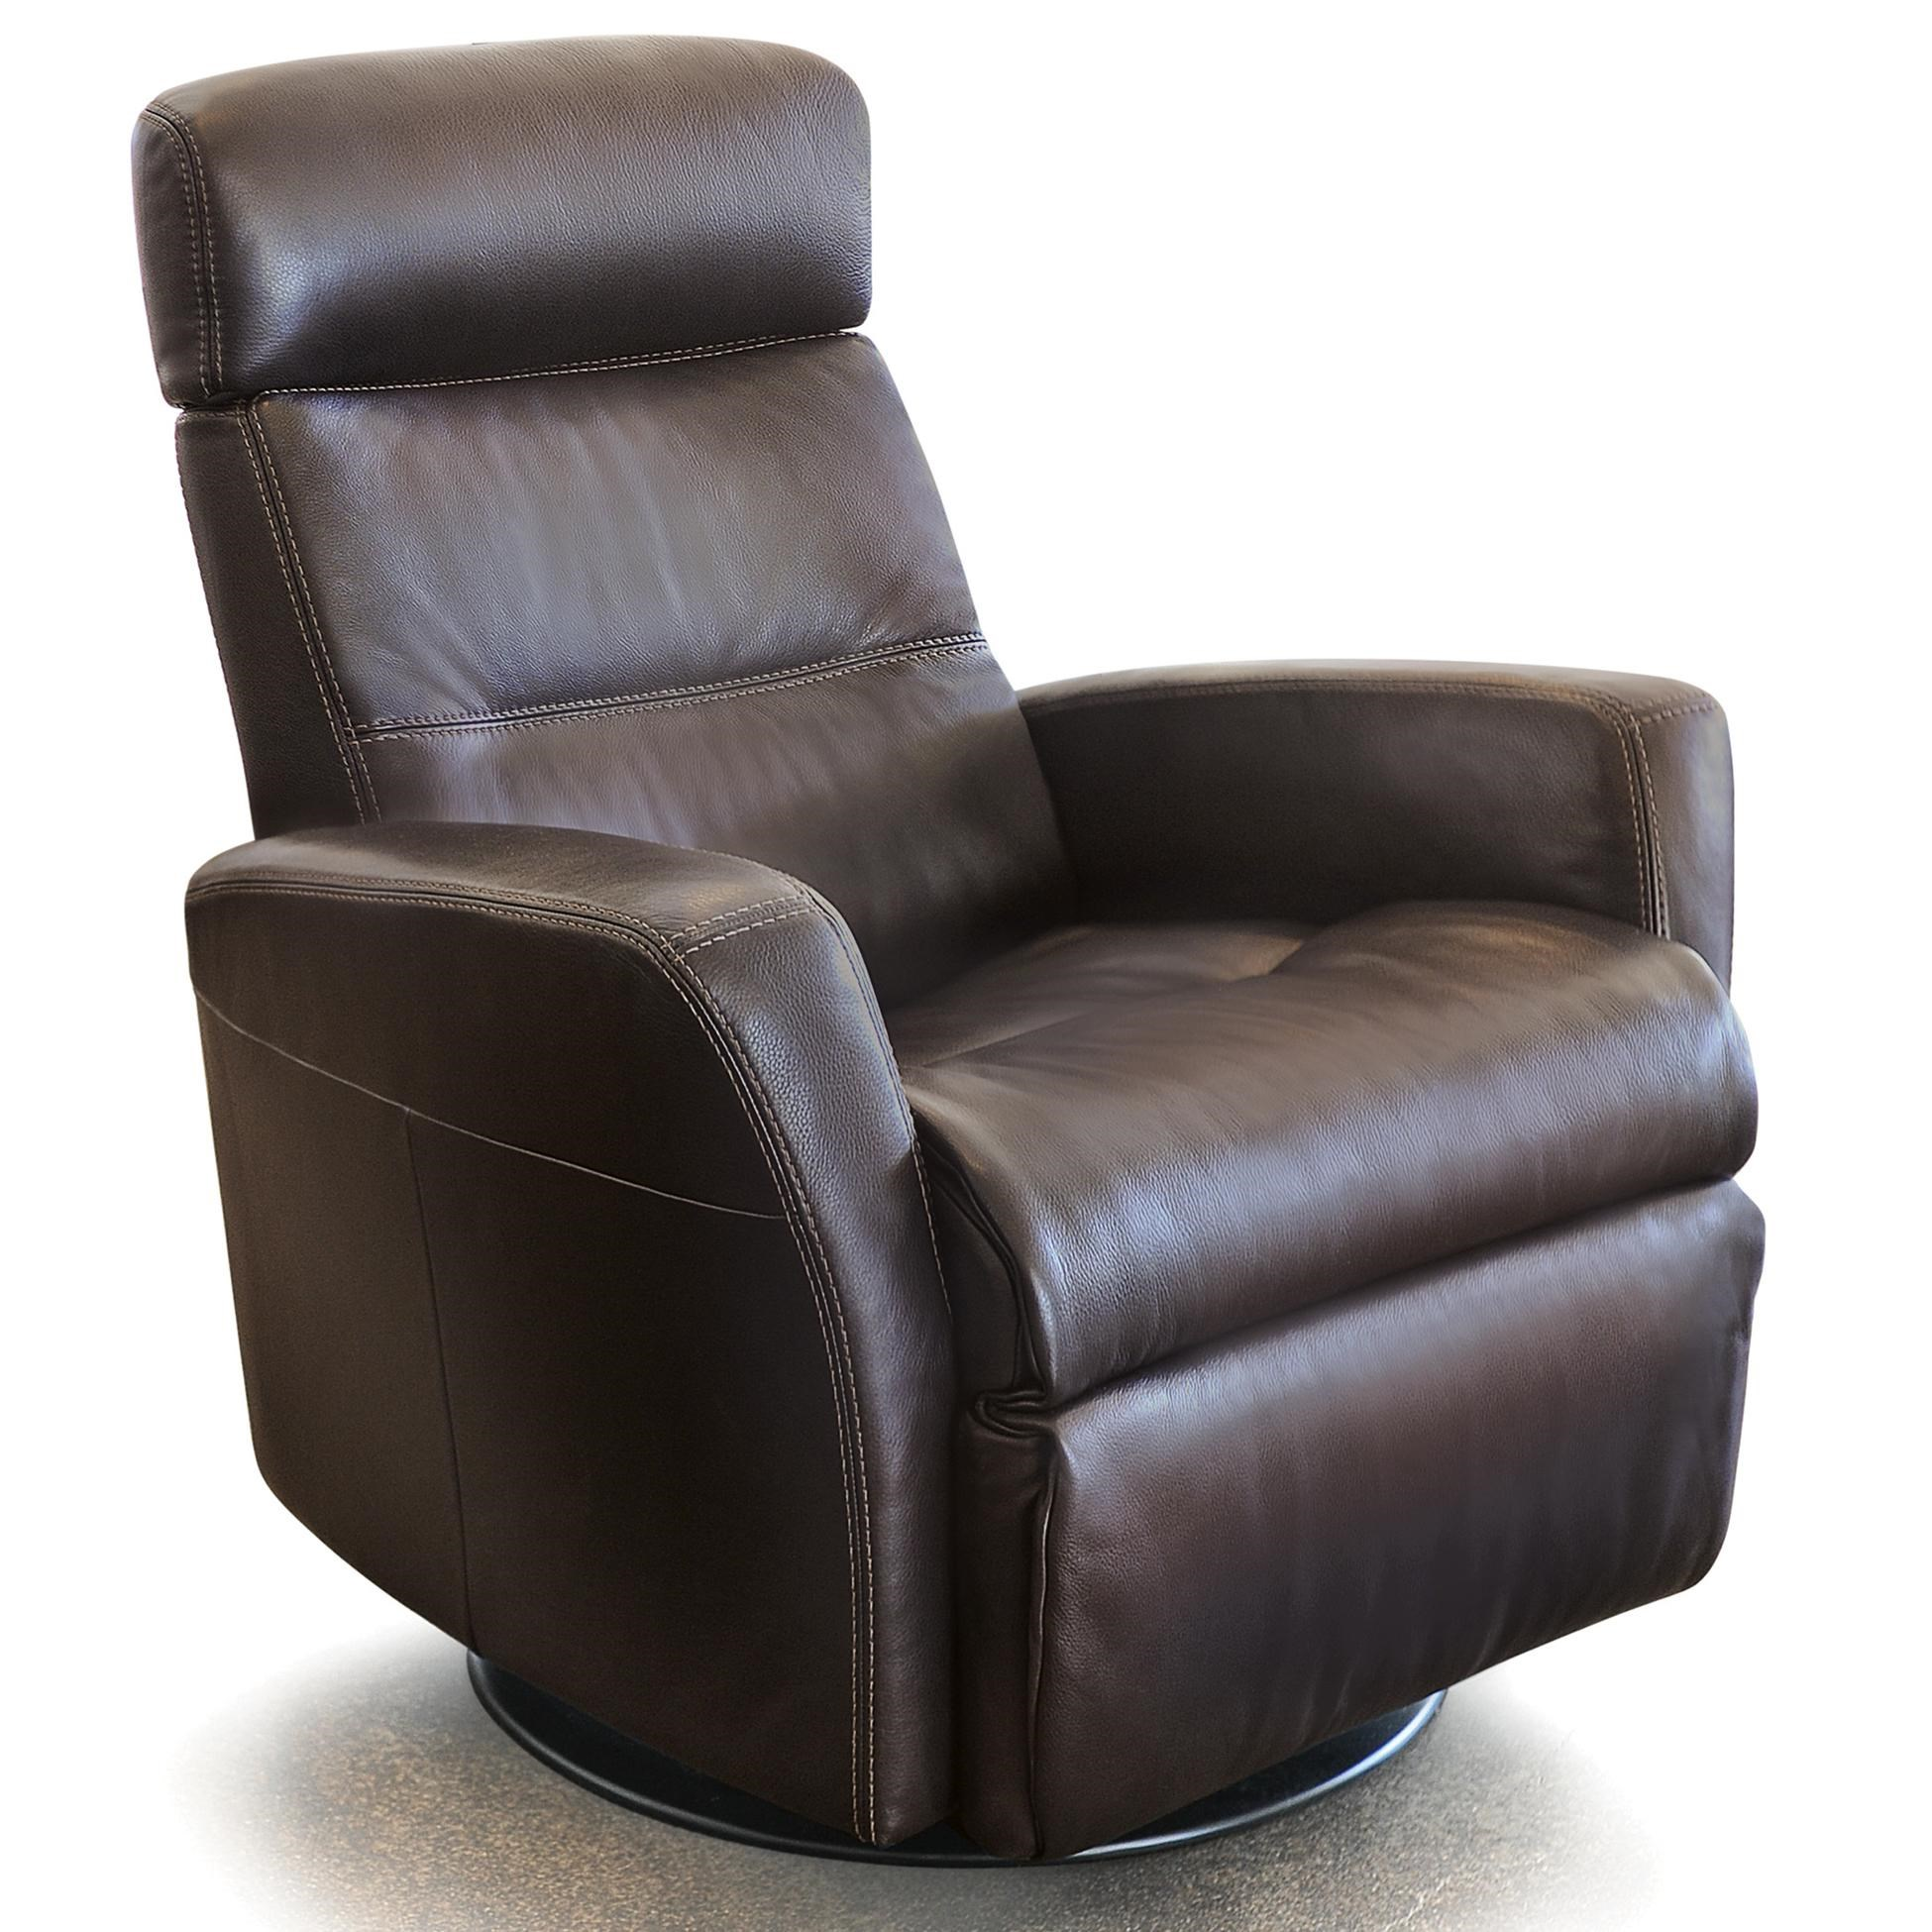 Divani Relaxer Chair Vendor 508 Recliners 0154267so Modern Divani Recliner Relaxer With